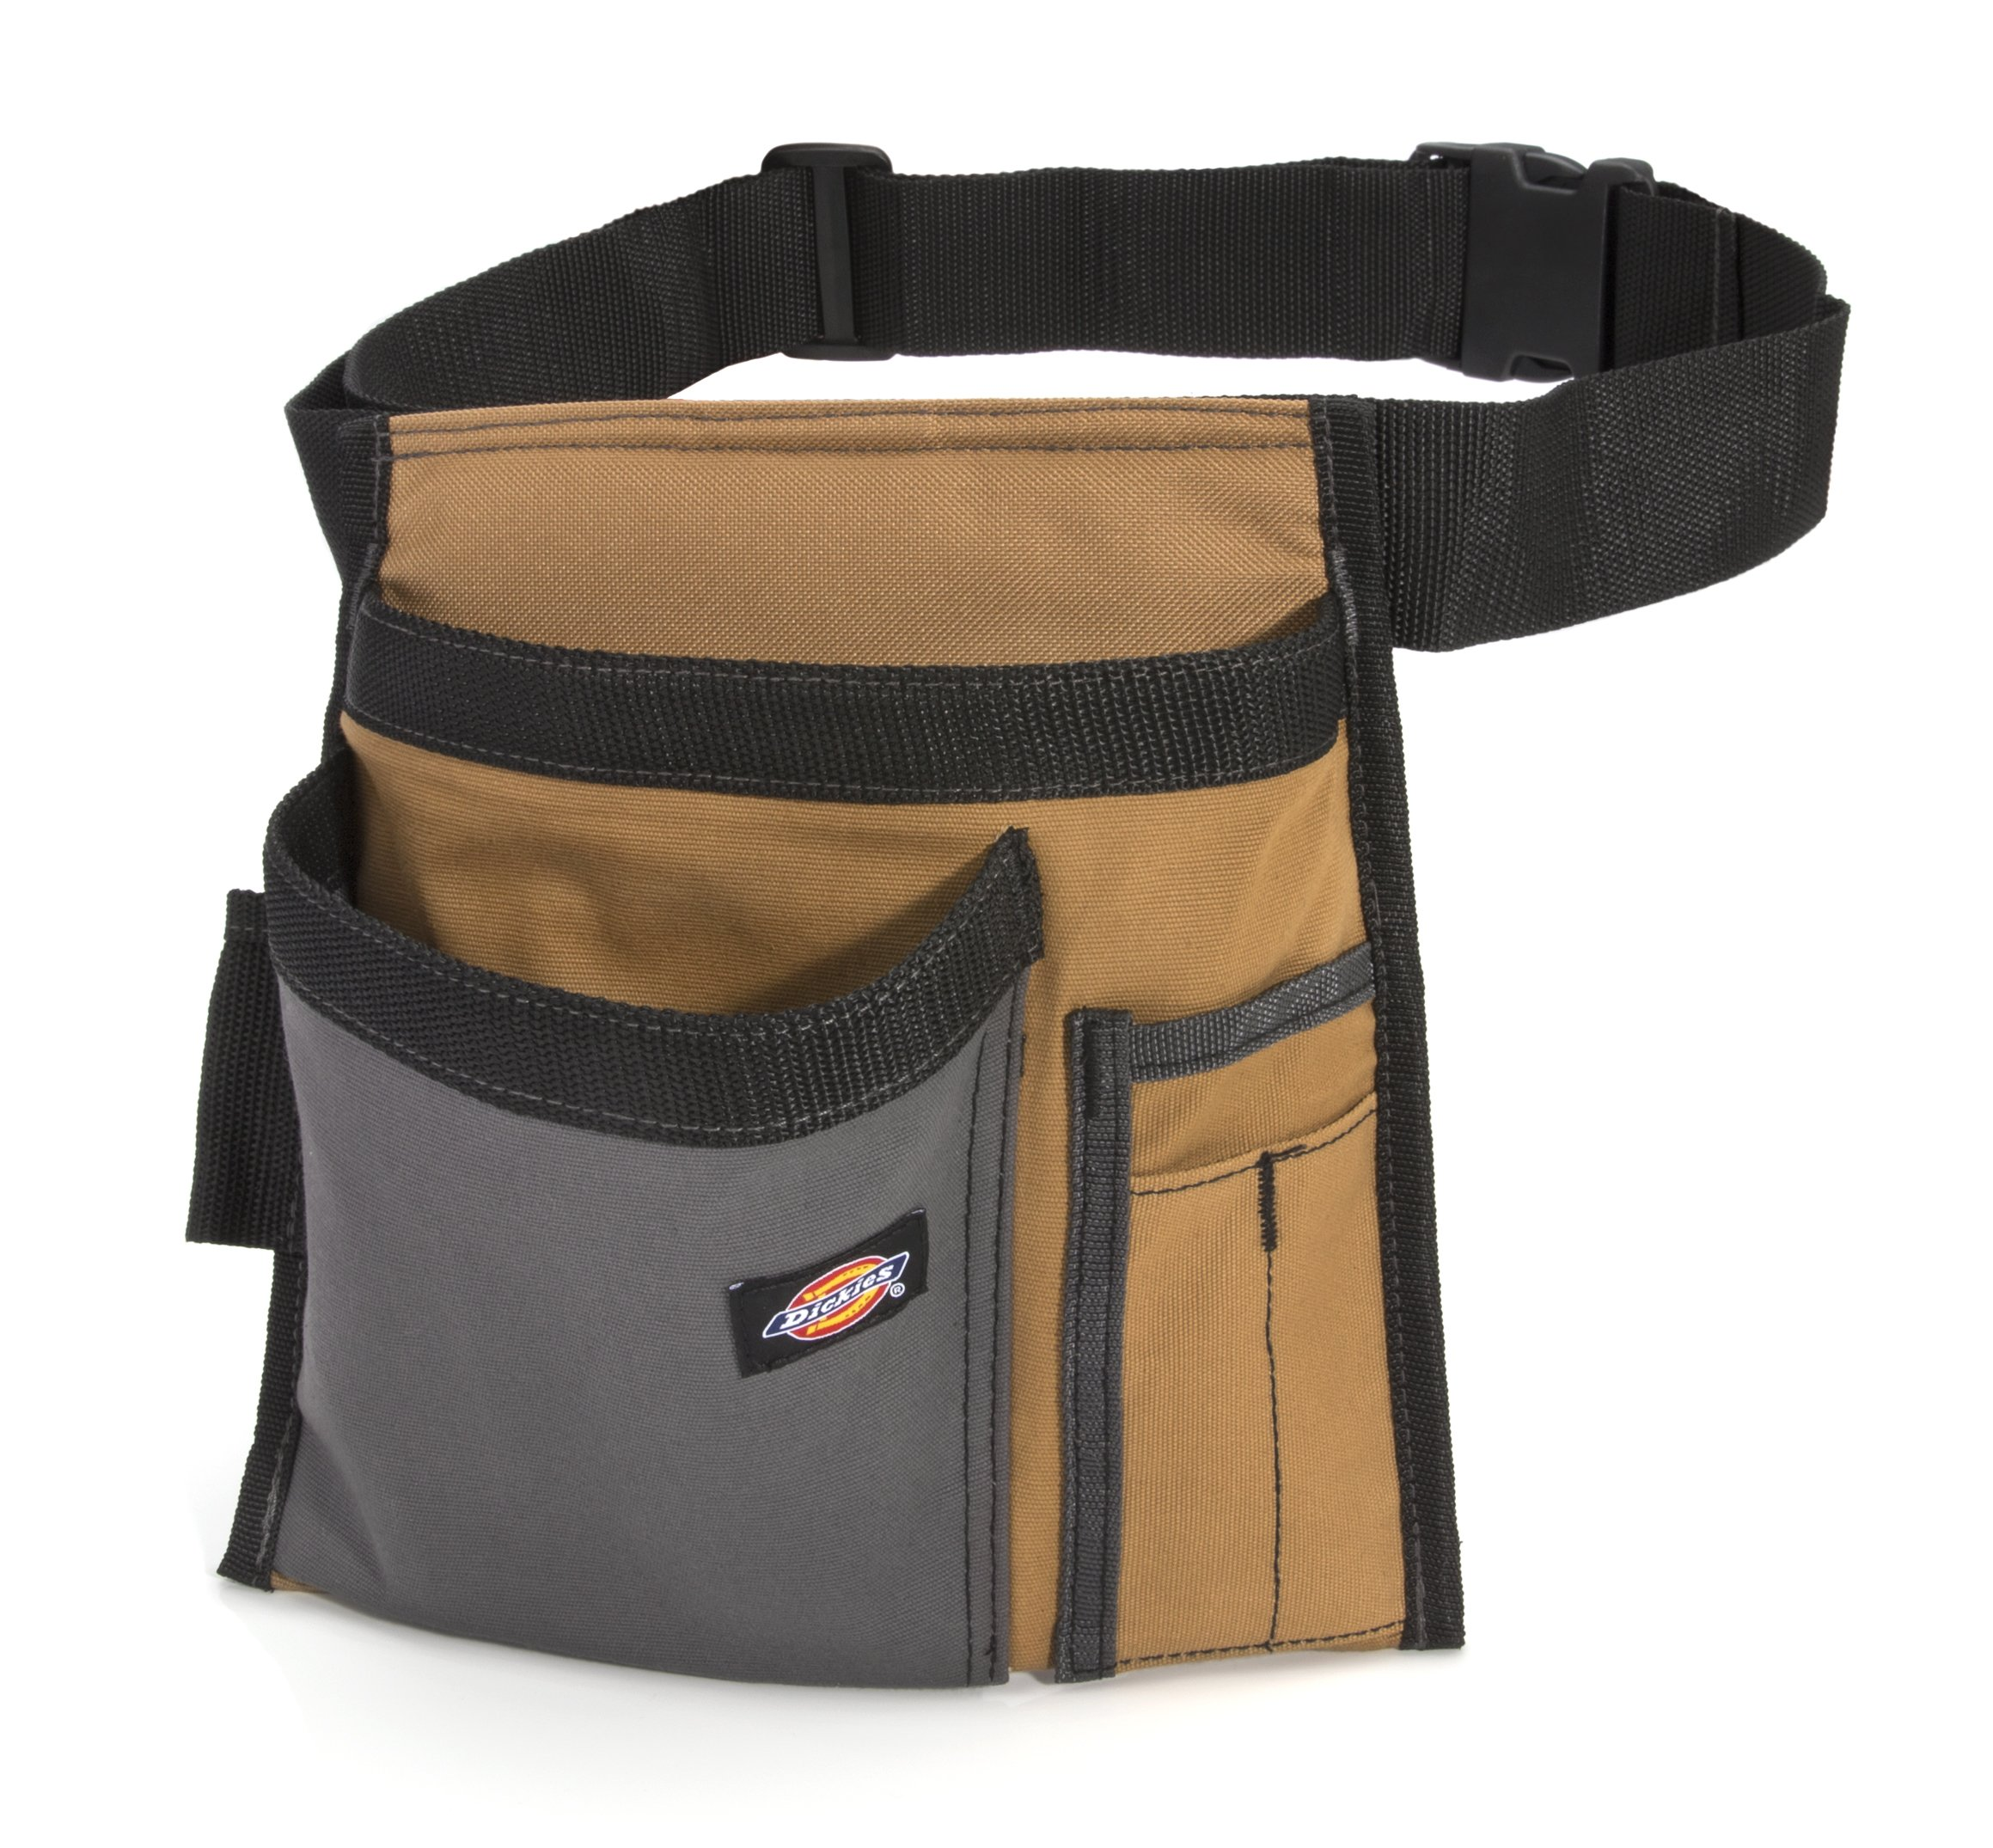 Dickies Work Gear 57026 Grey/Tan 5-Pocket Single Side Apron by Dickies Work Gear